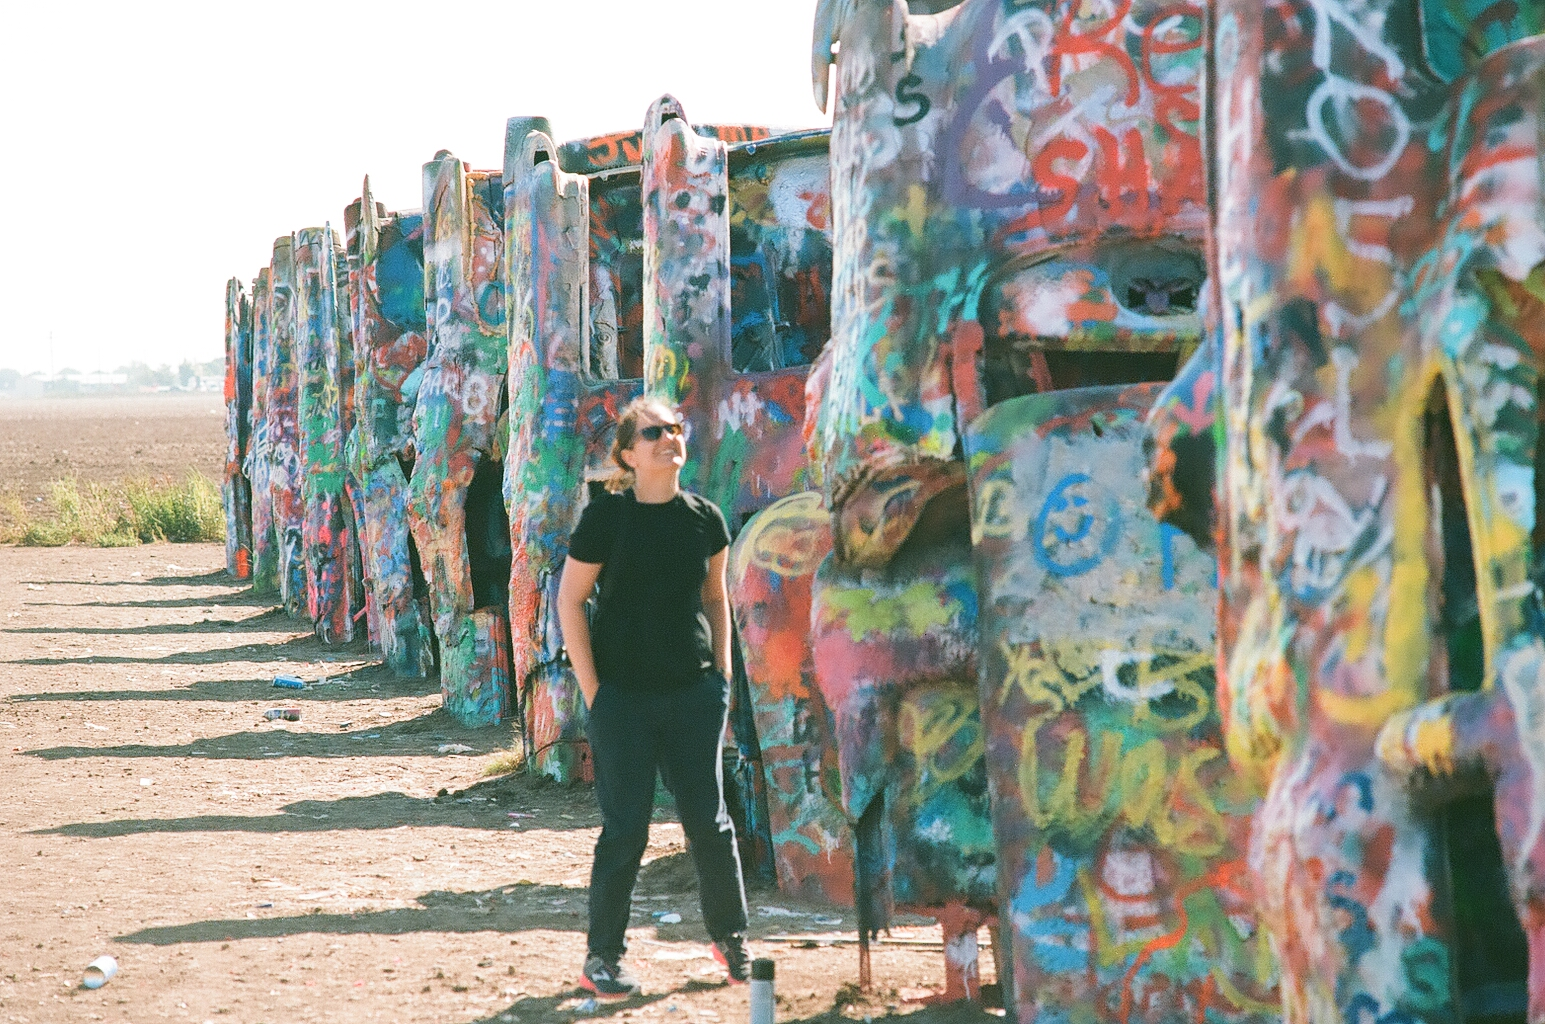 Michelle in New Mexico next to some graffiti art.